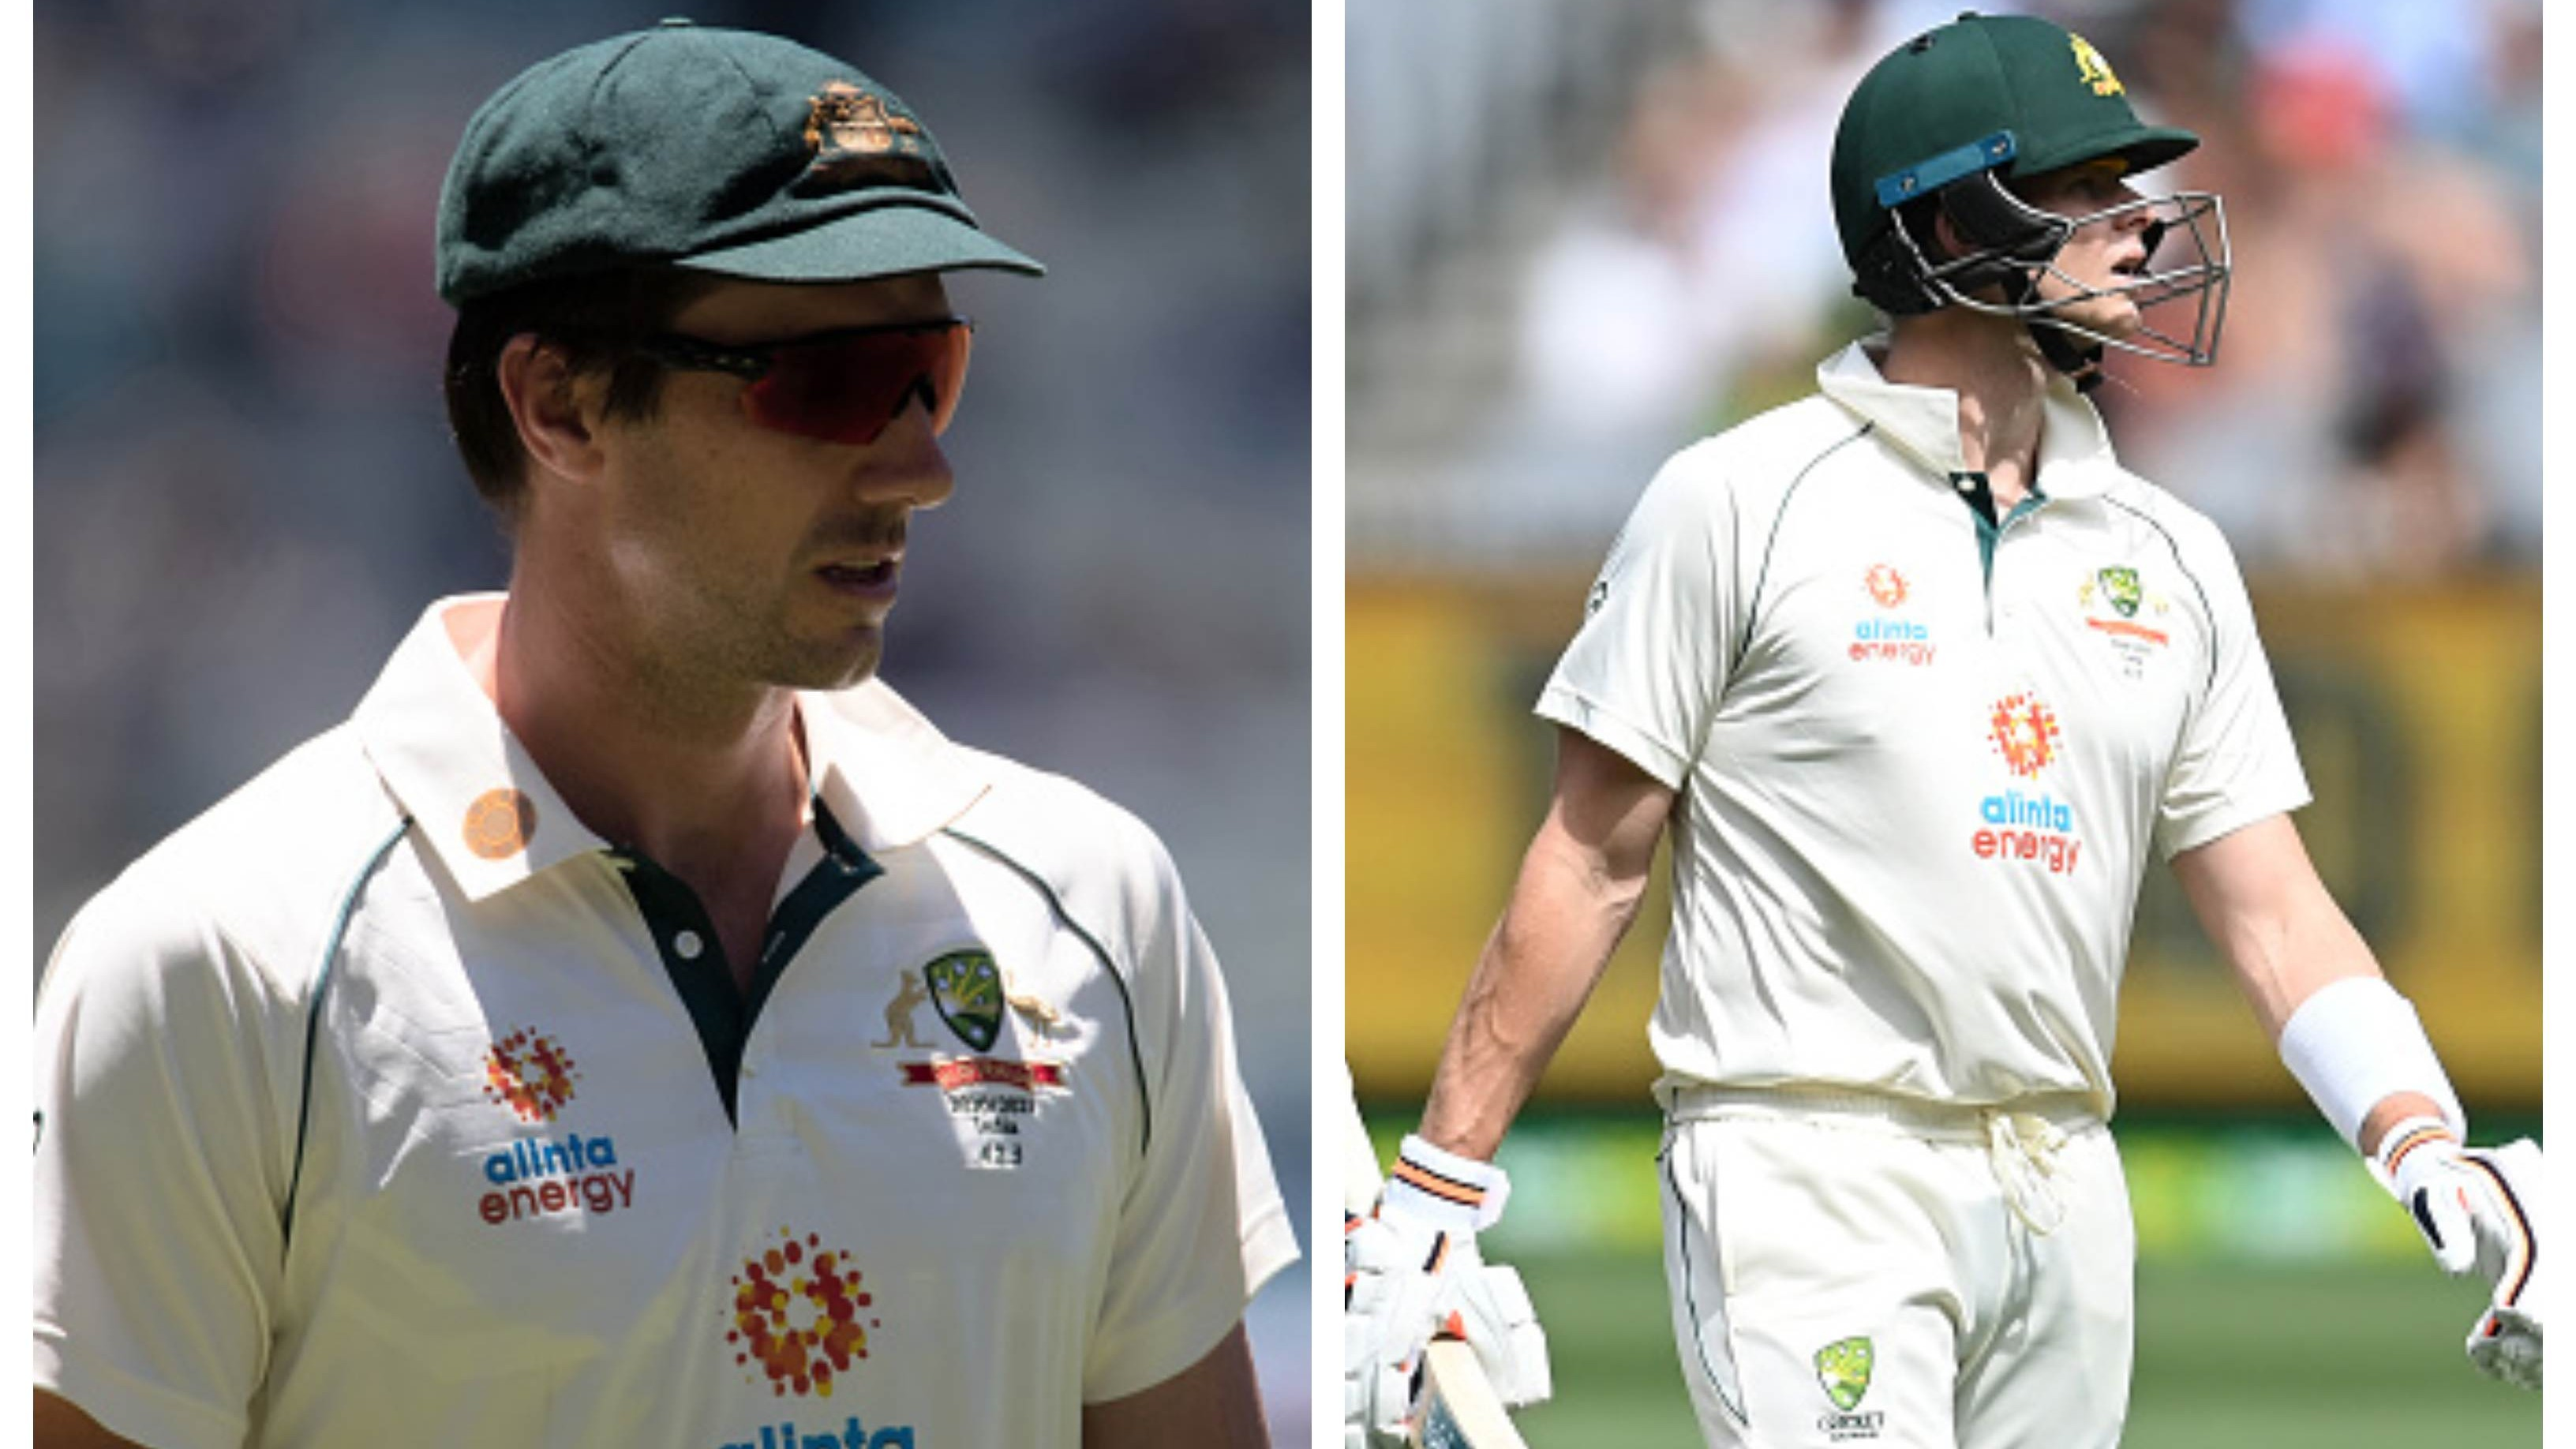 AUS v IND 2020-21: 'They'll come good', Cummins backs Australian batsmen to deliver in the last two Tests